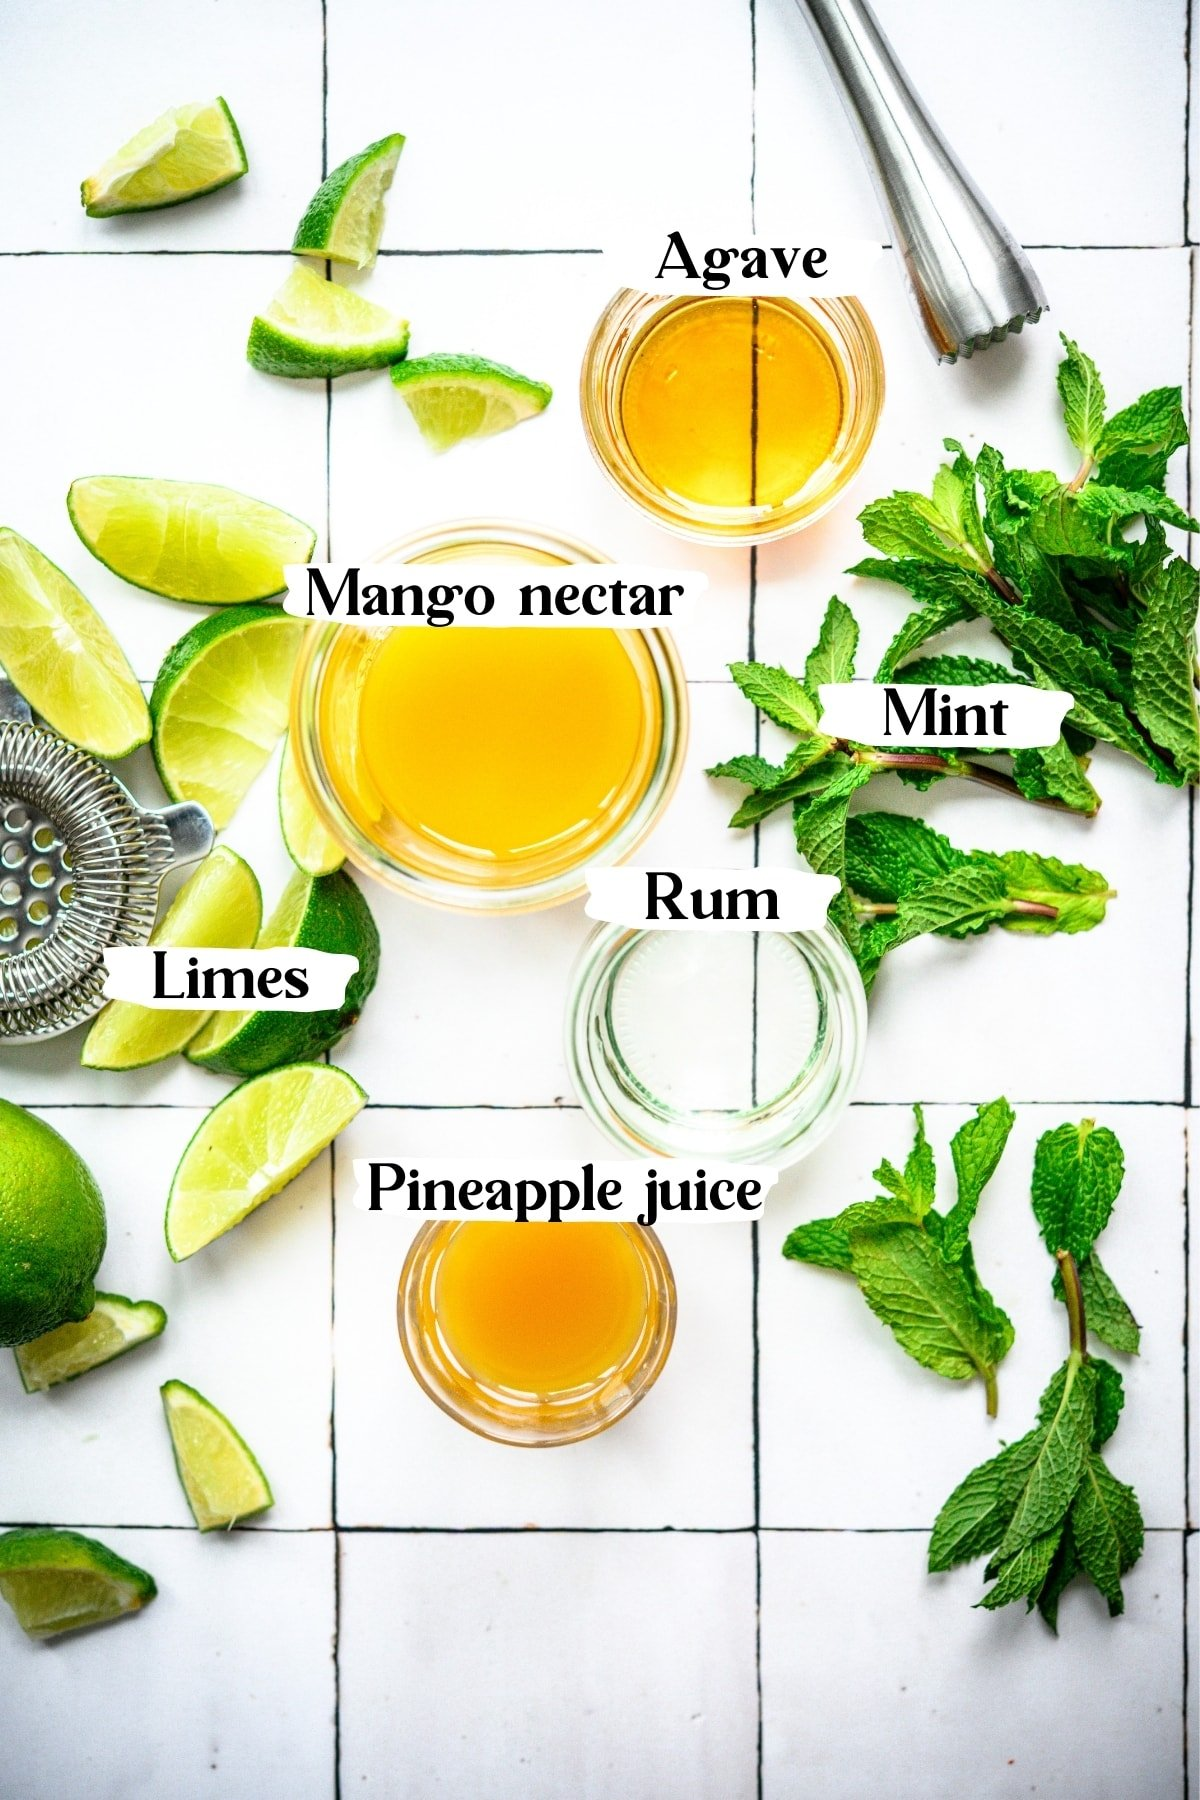 overhead view of mango nectar, rum, limes, mint, pineapple juice and agave in small bowls on white tile.